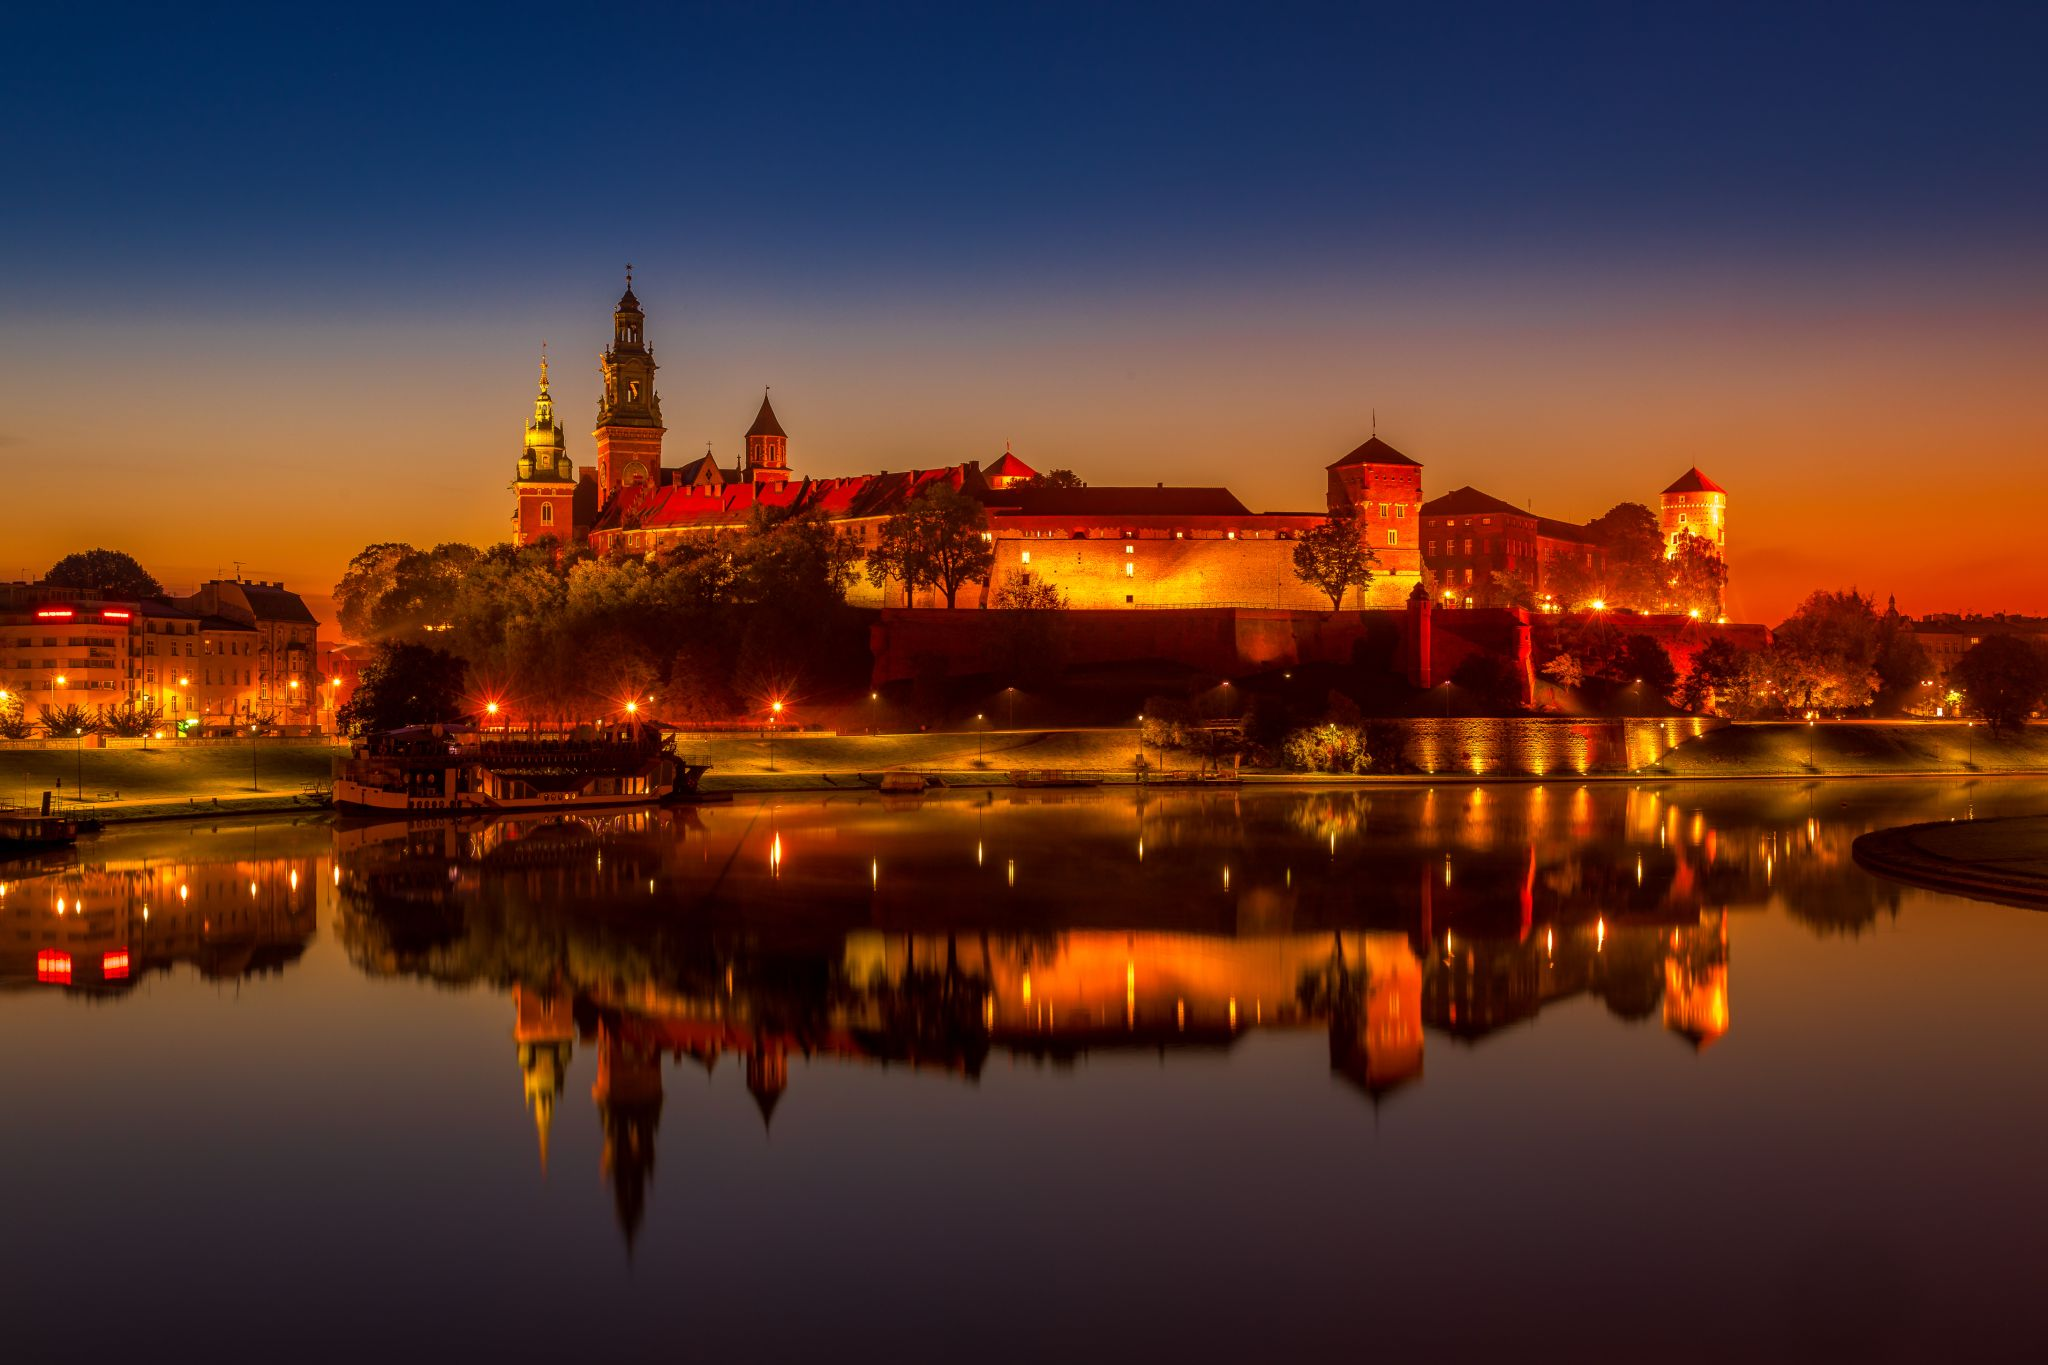 Wawel castle and cathedral in Krakow Poland